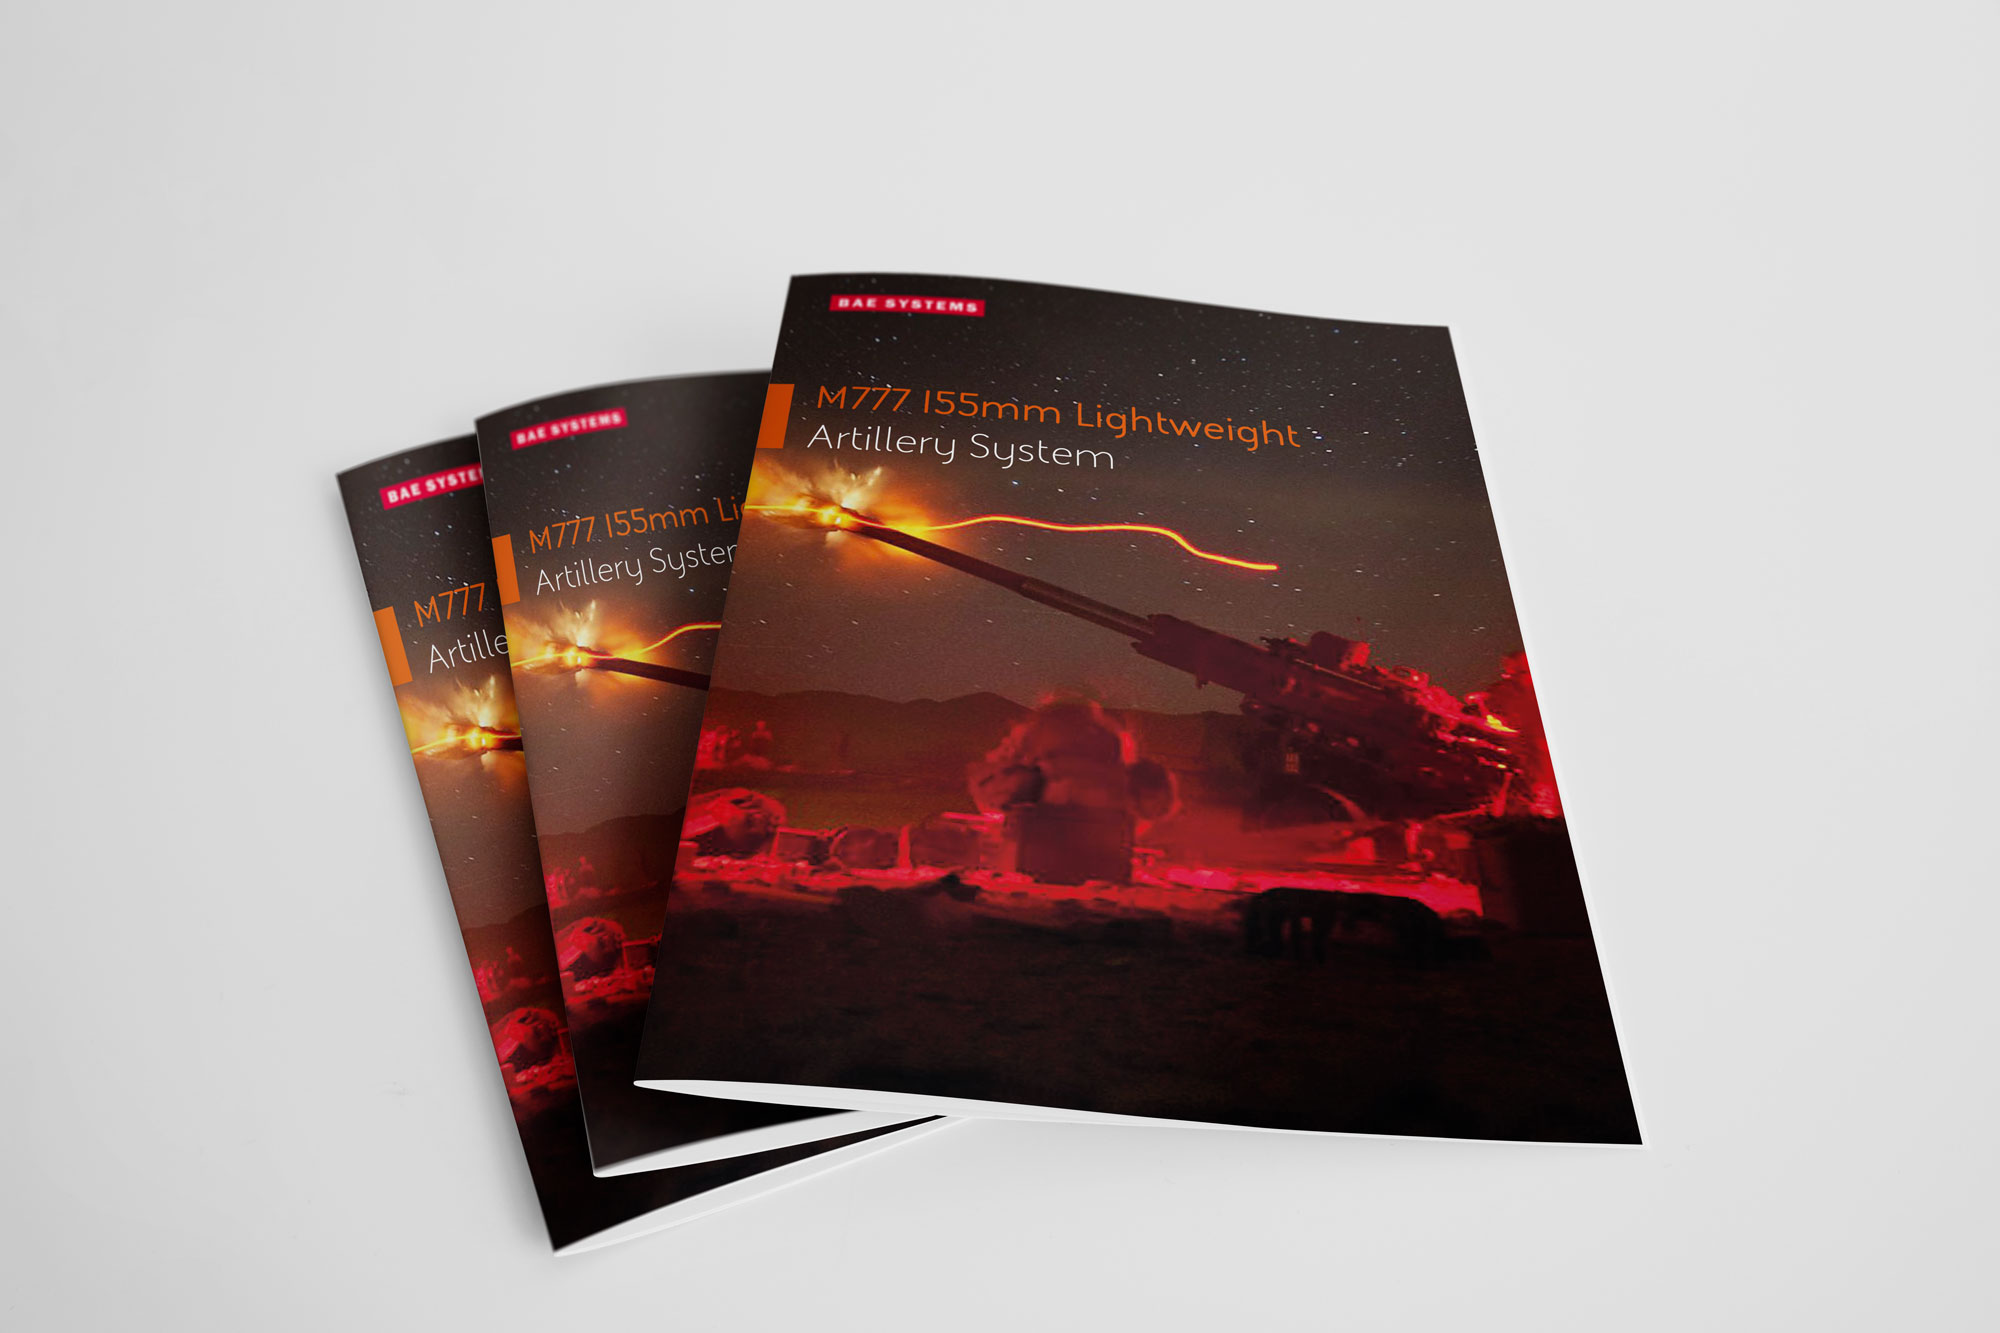 BAE Systems Graphic Design